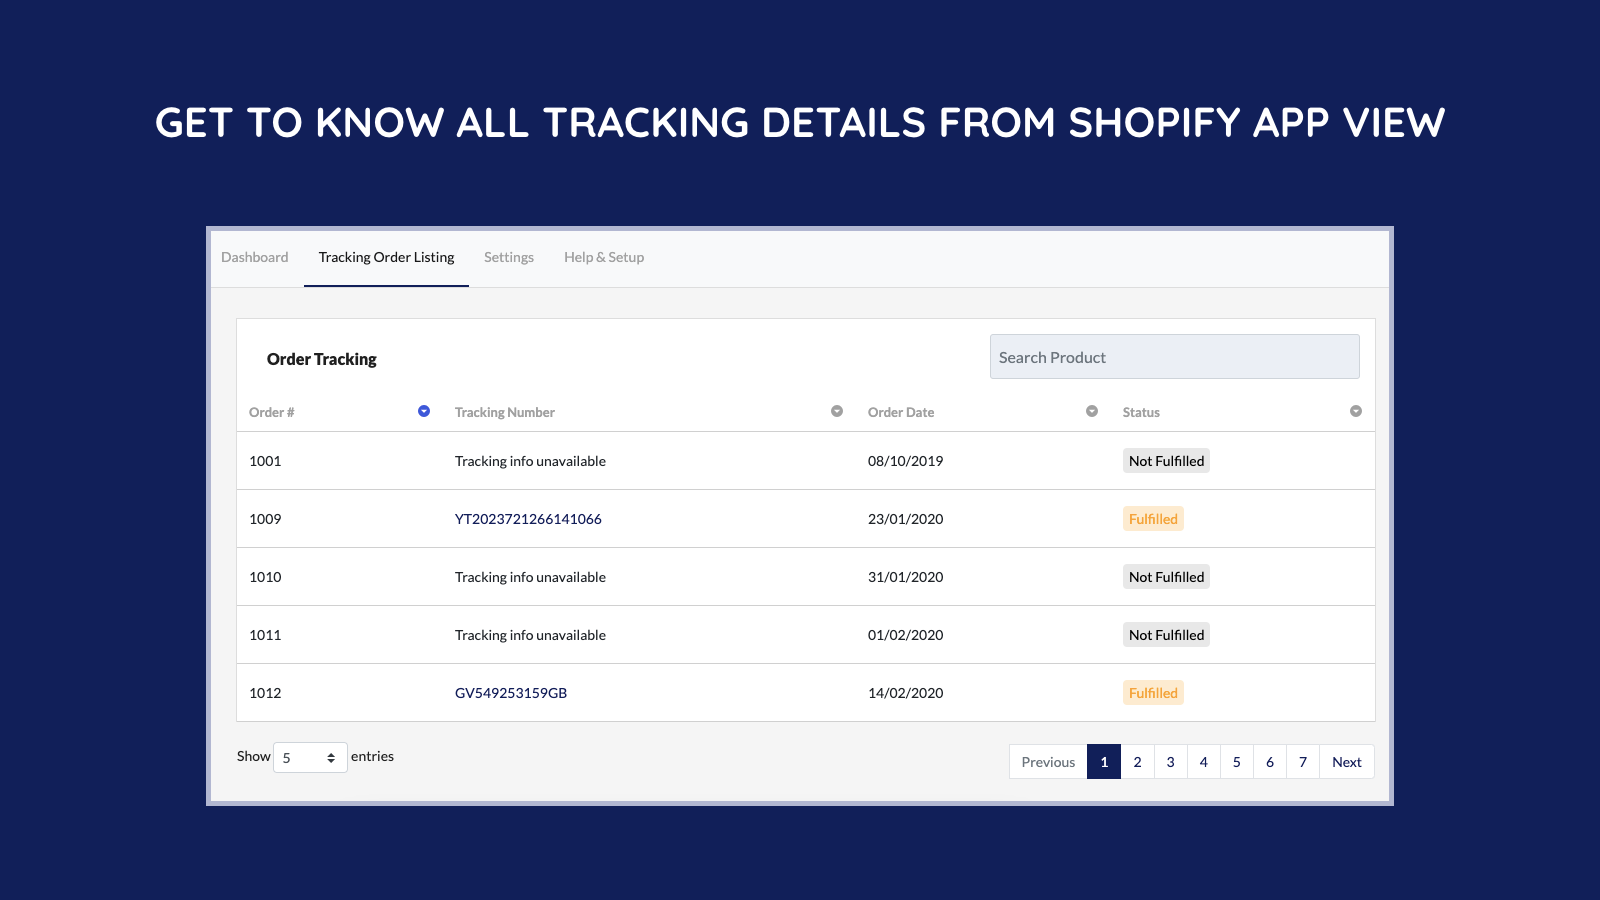 Get to know all tracking details from shopify app view